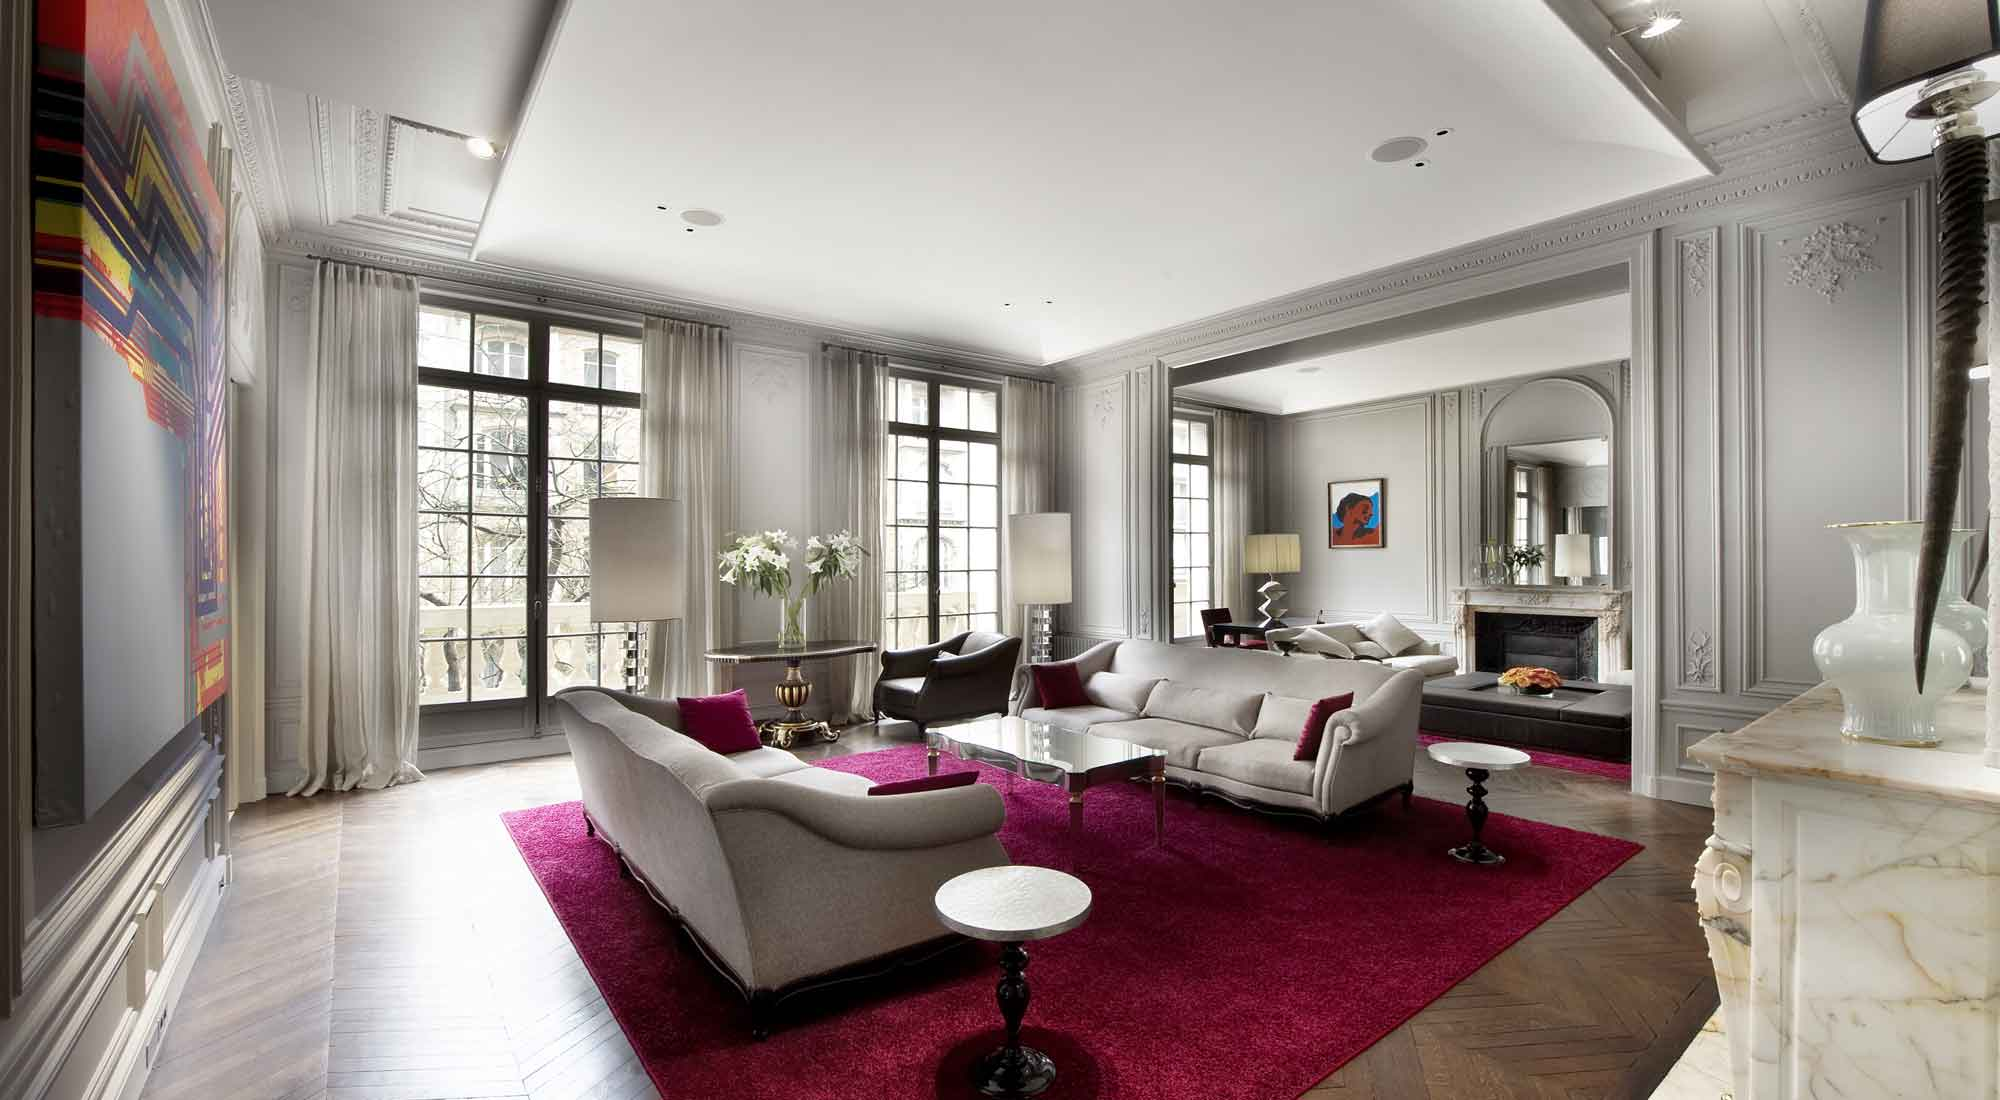 Paris luxury Apartment for Rent / 16th / Casol Villas France